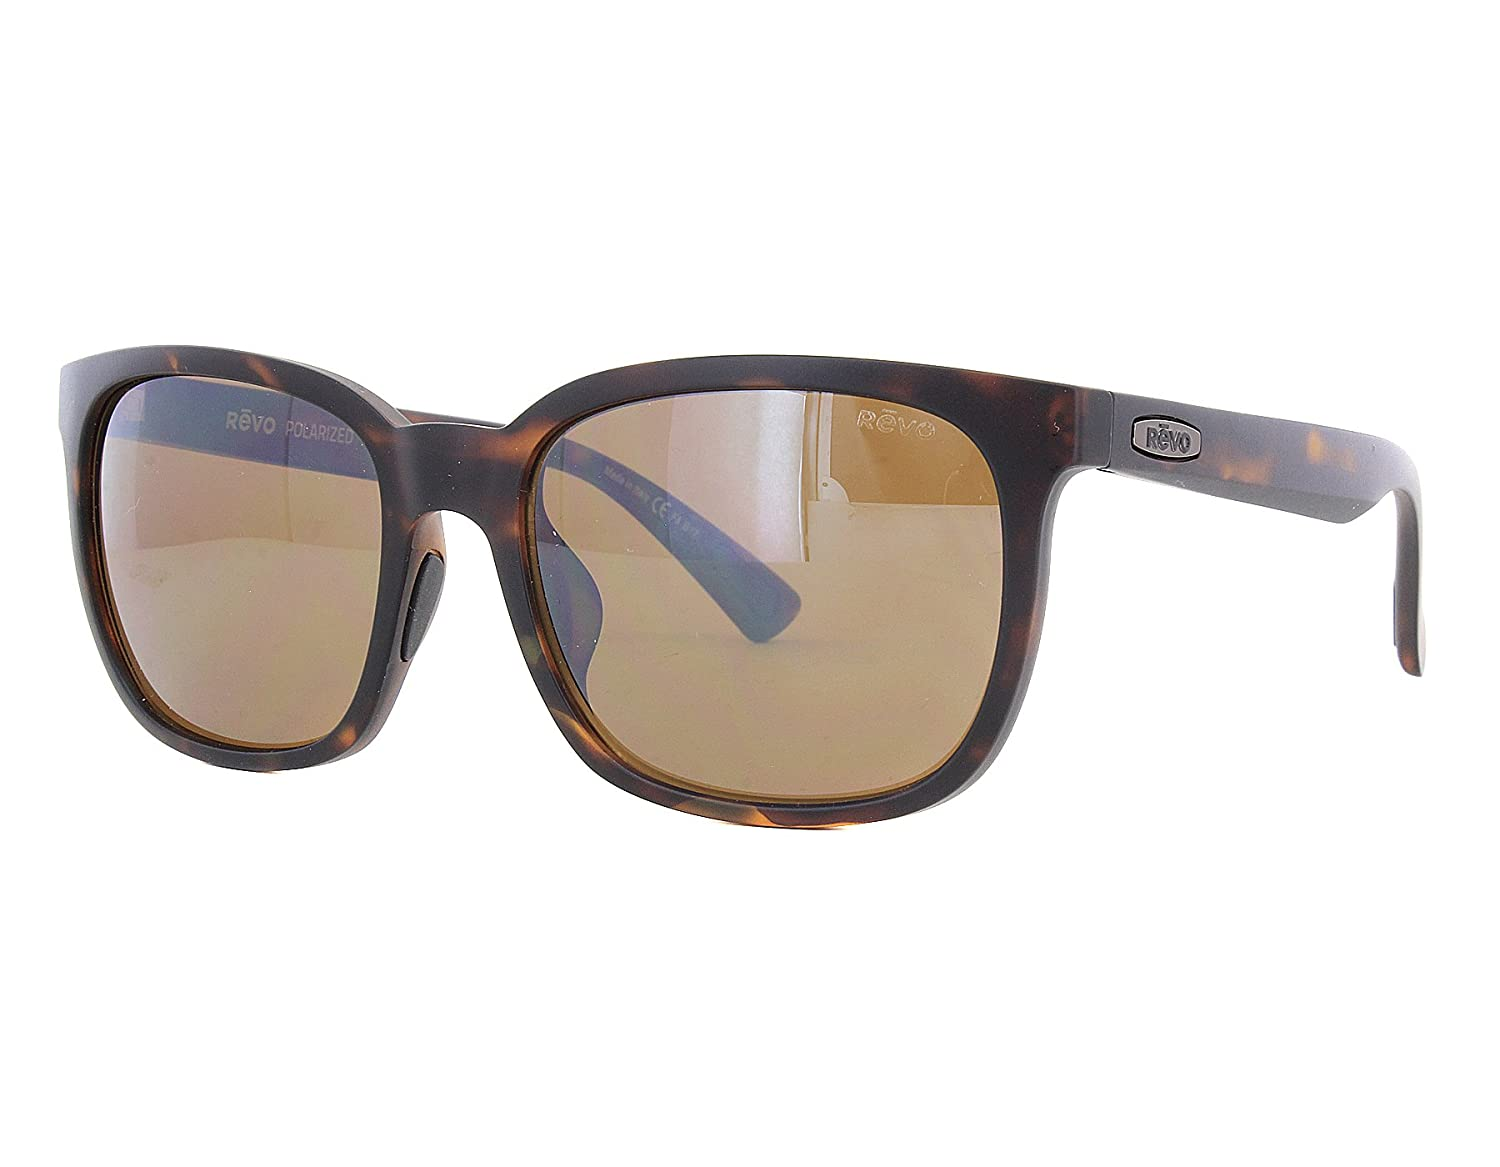 Revo RE 1050 Slater Polarized Wayfarer Sunglasses 55 mm Matte Tortoise Terra